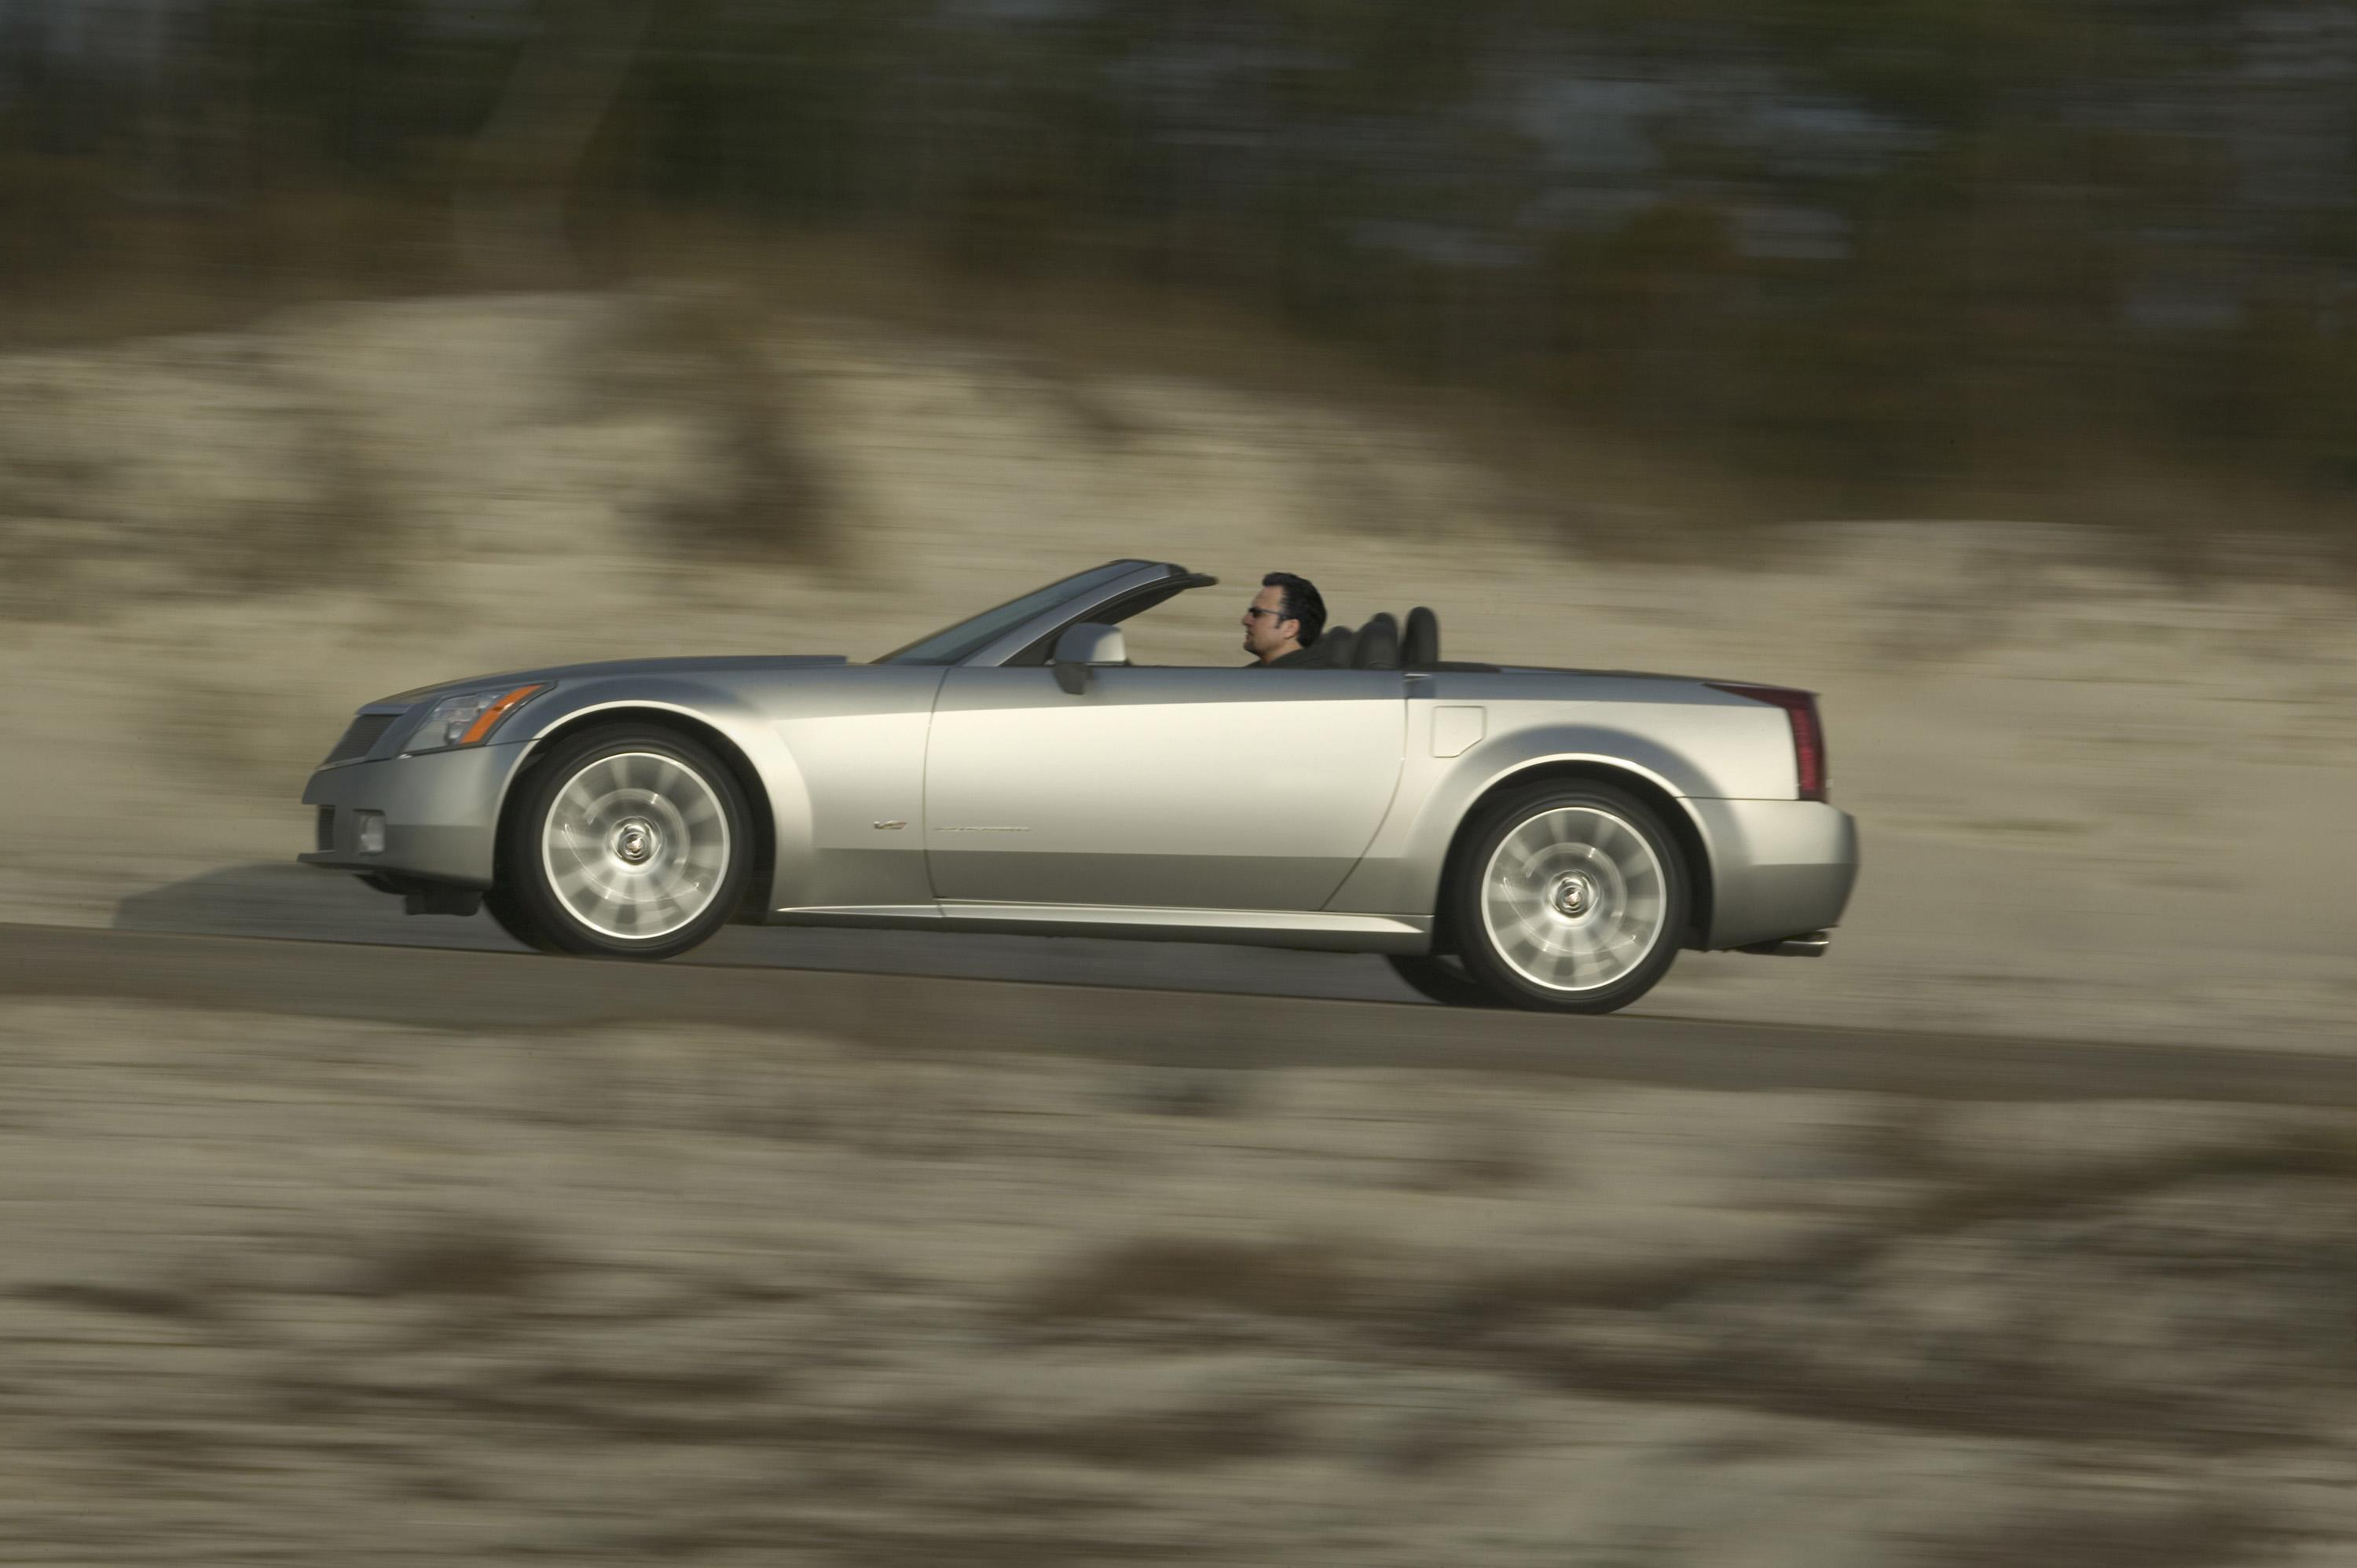 image auctions house roadster biloxi sale at for vicari auction a of xlr cadillac